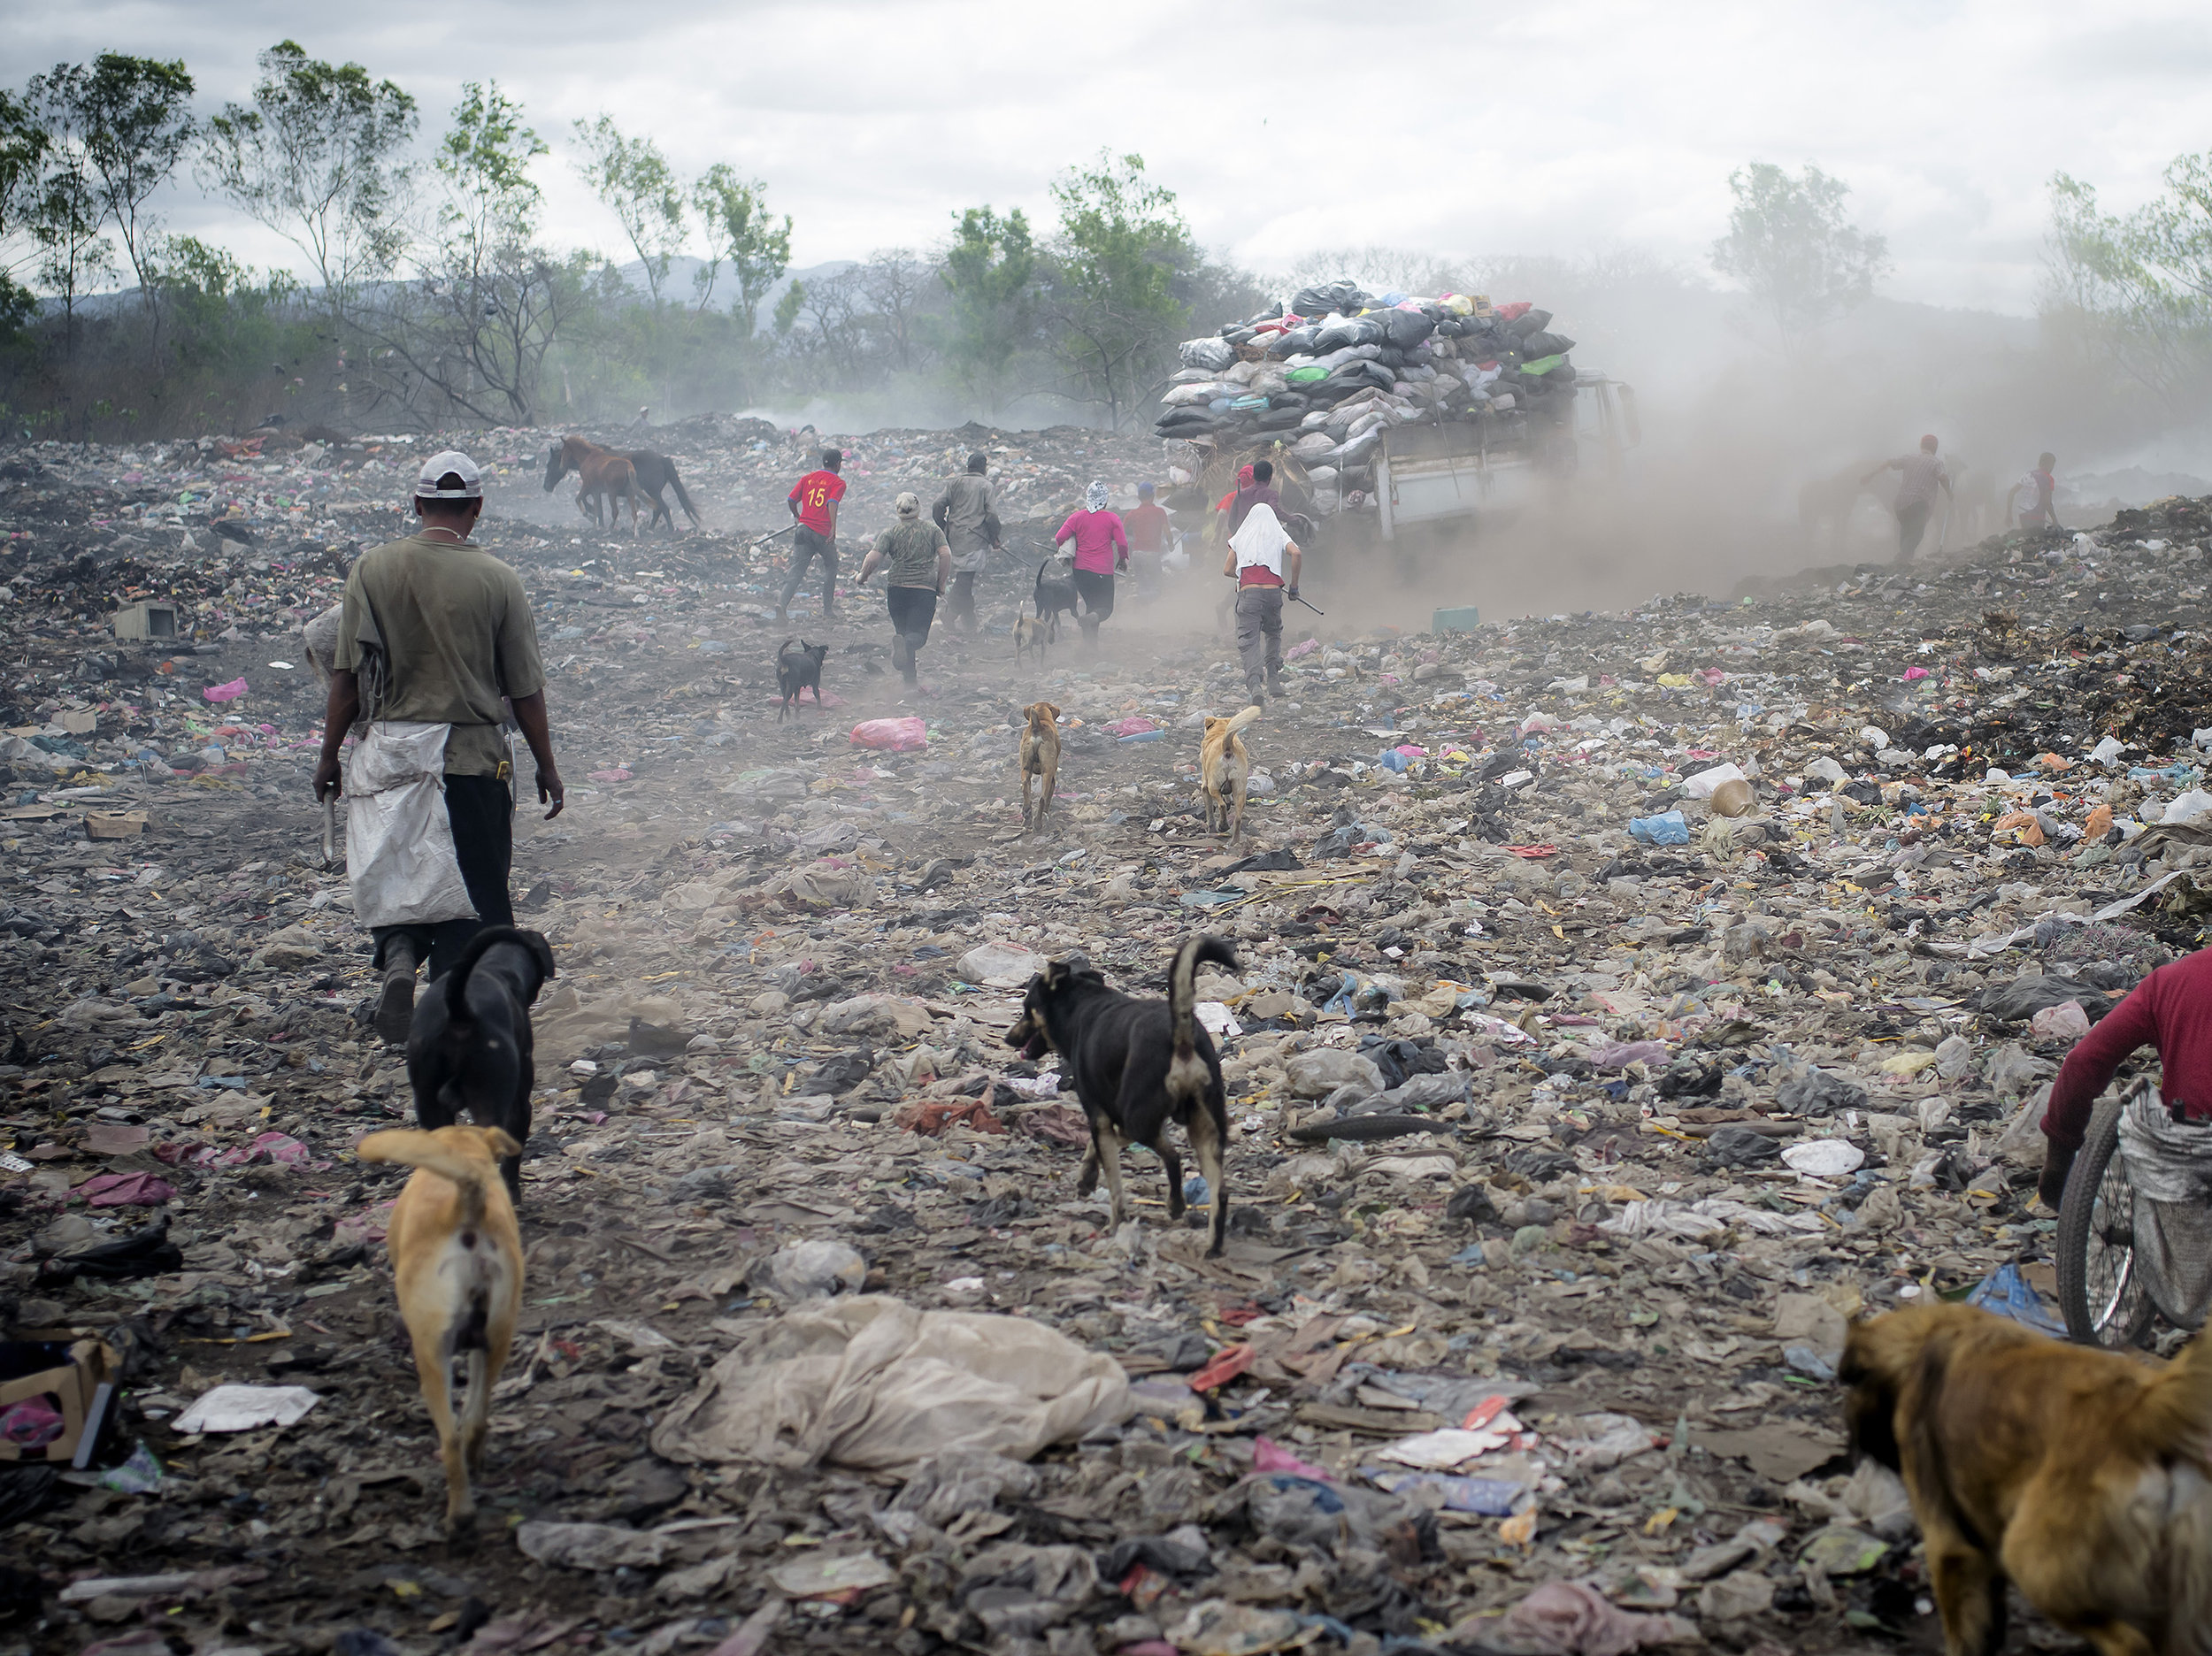 Families run towards a dump truck to have a fair pick of the materials they are searching for, including a elderly man in a wheelchair.